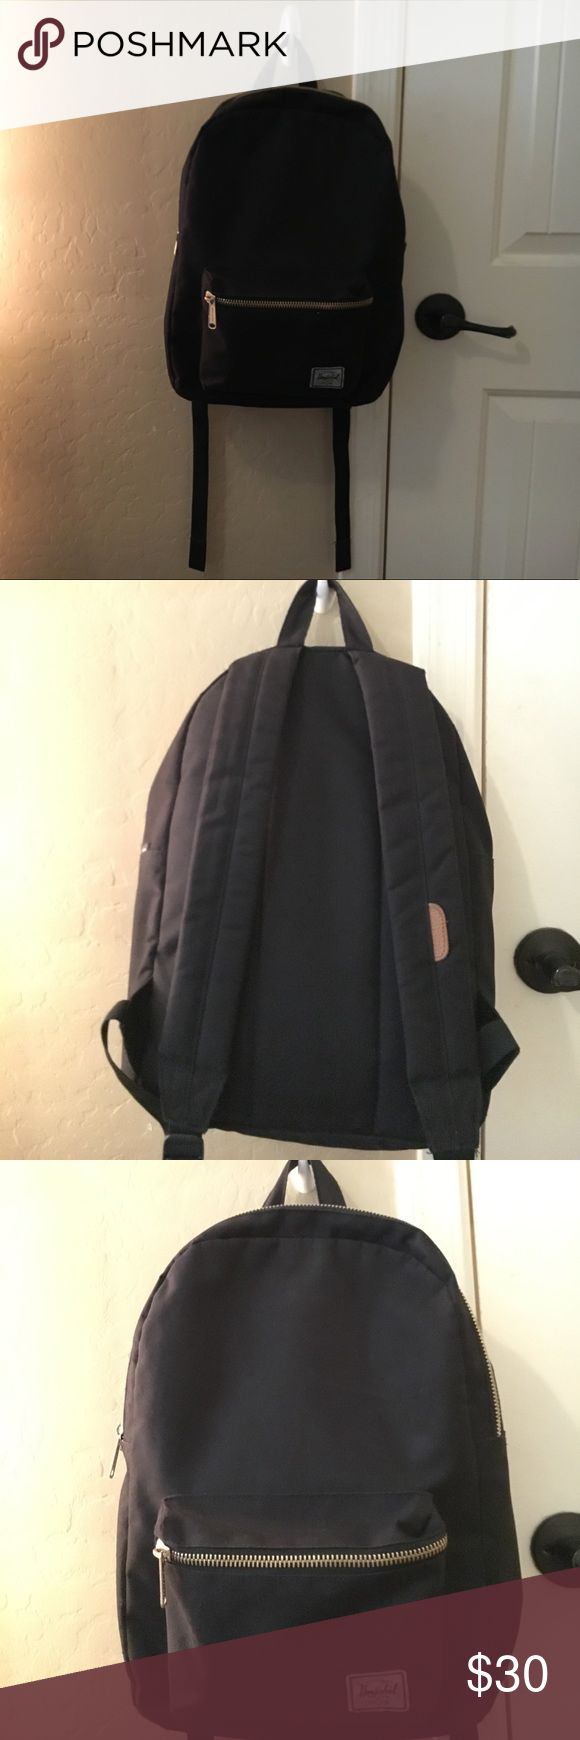 Herschel gold zipper black backpack Herschel black backpack, gold zippers. Normal backpack size. Lightly used, a little worn out front pocket, no rips/ tears. Good condition, all zippers on. No parts missing. Herschel Supply Company Bags Backpacks